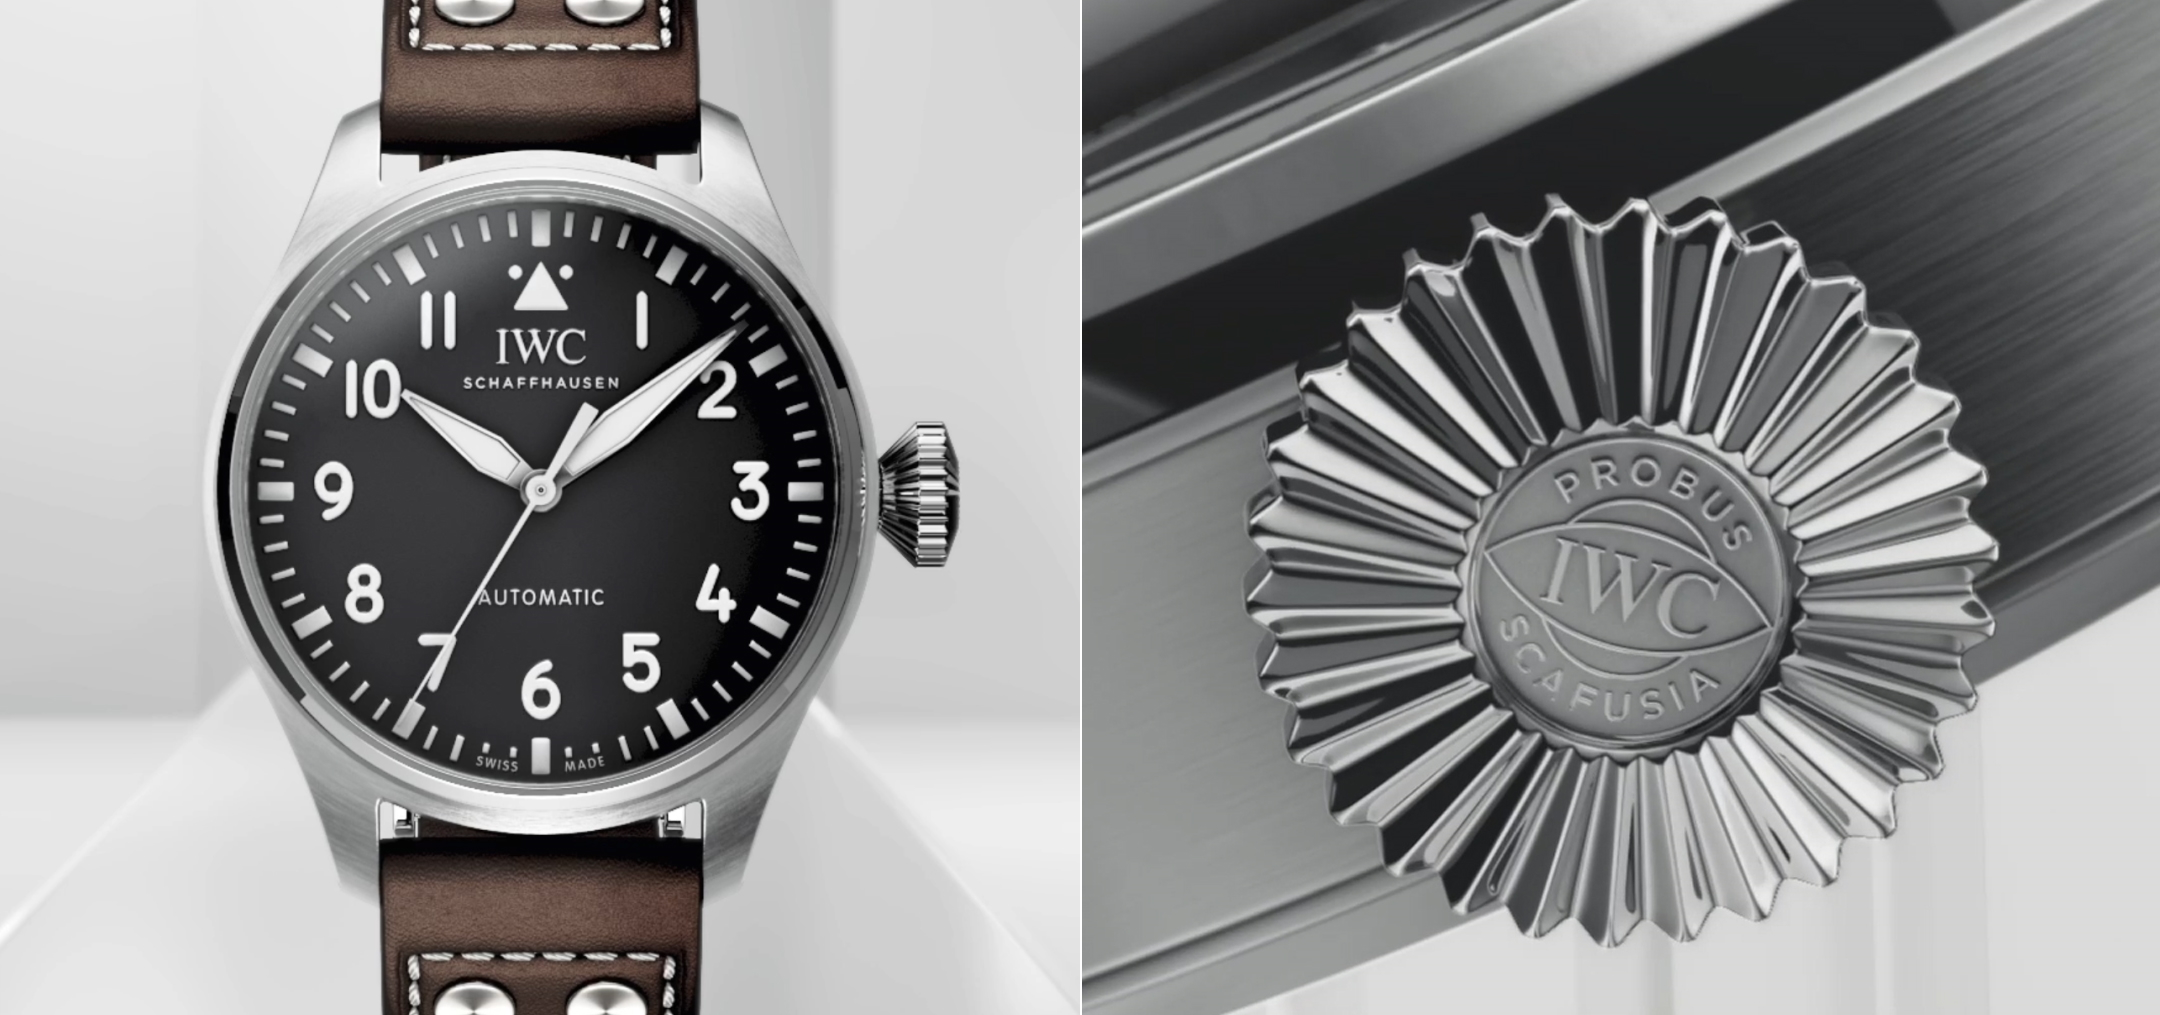 The Big Pilot Exhibition In Singapore Is Your Chance To View Historical IWC Timepieces Up Close